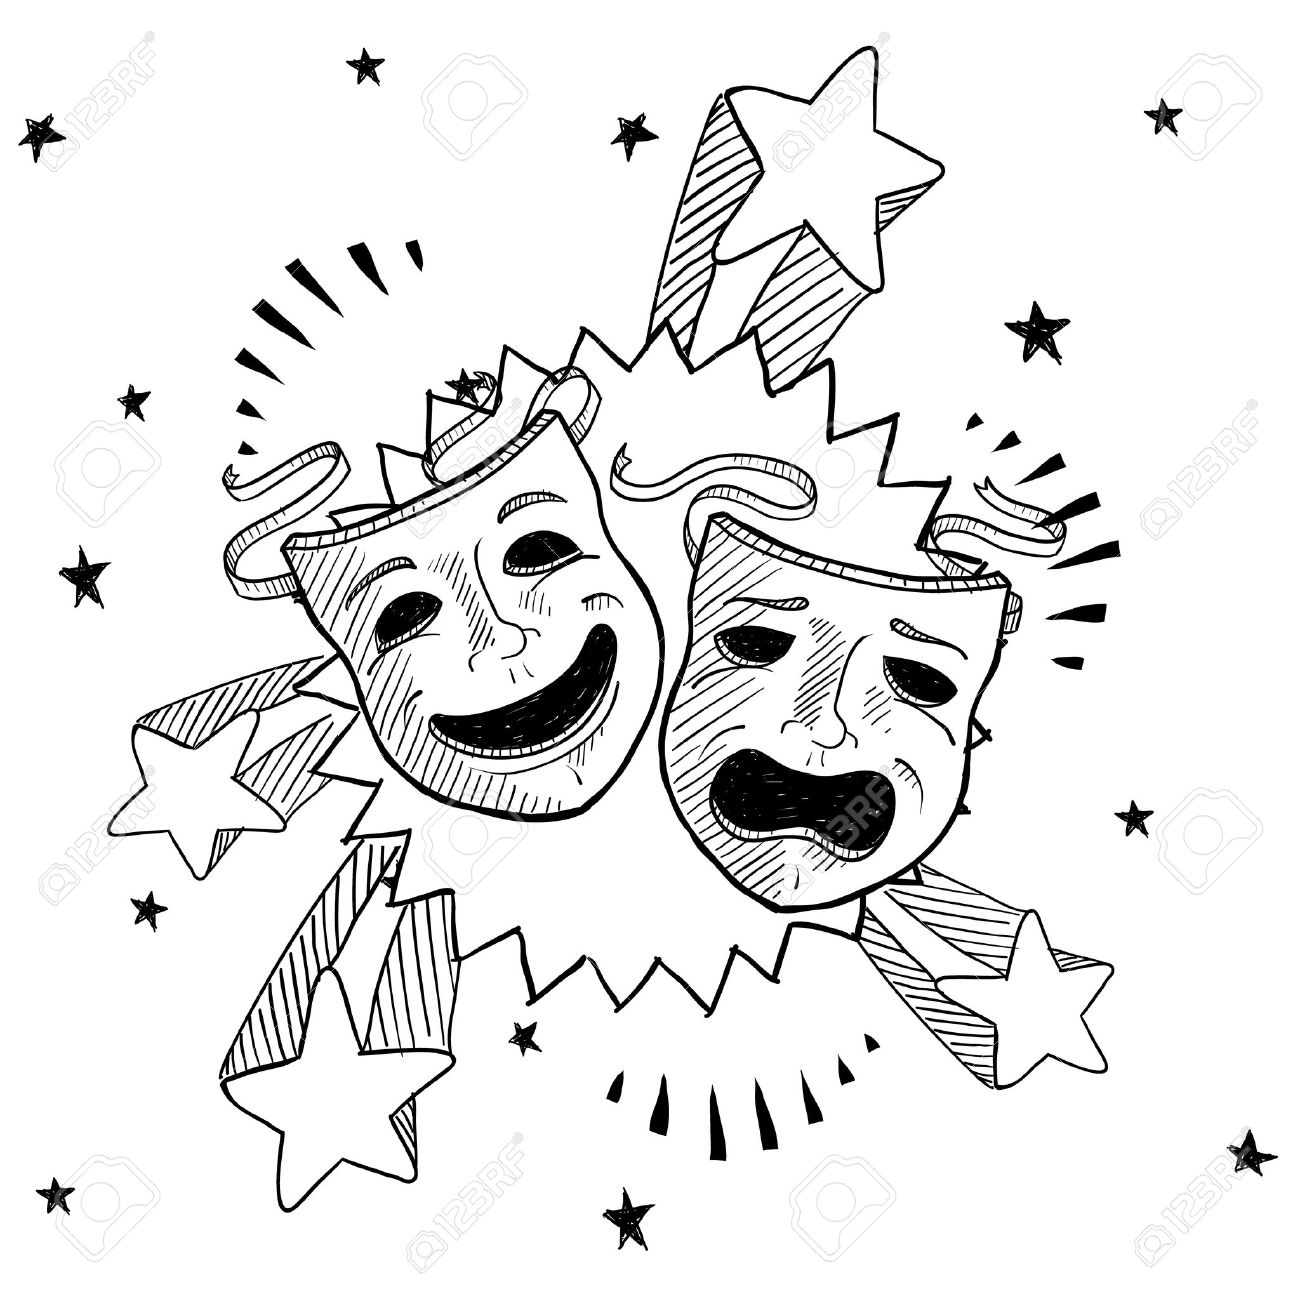 Doodle style theater or drama masks illustration with retro 1970s pop background - 13258691